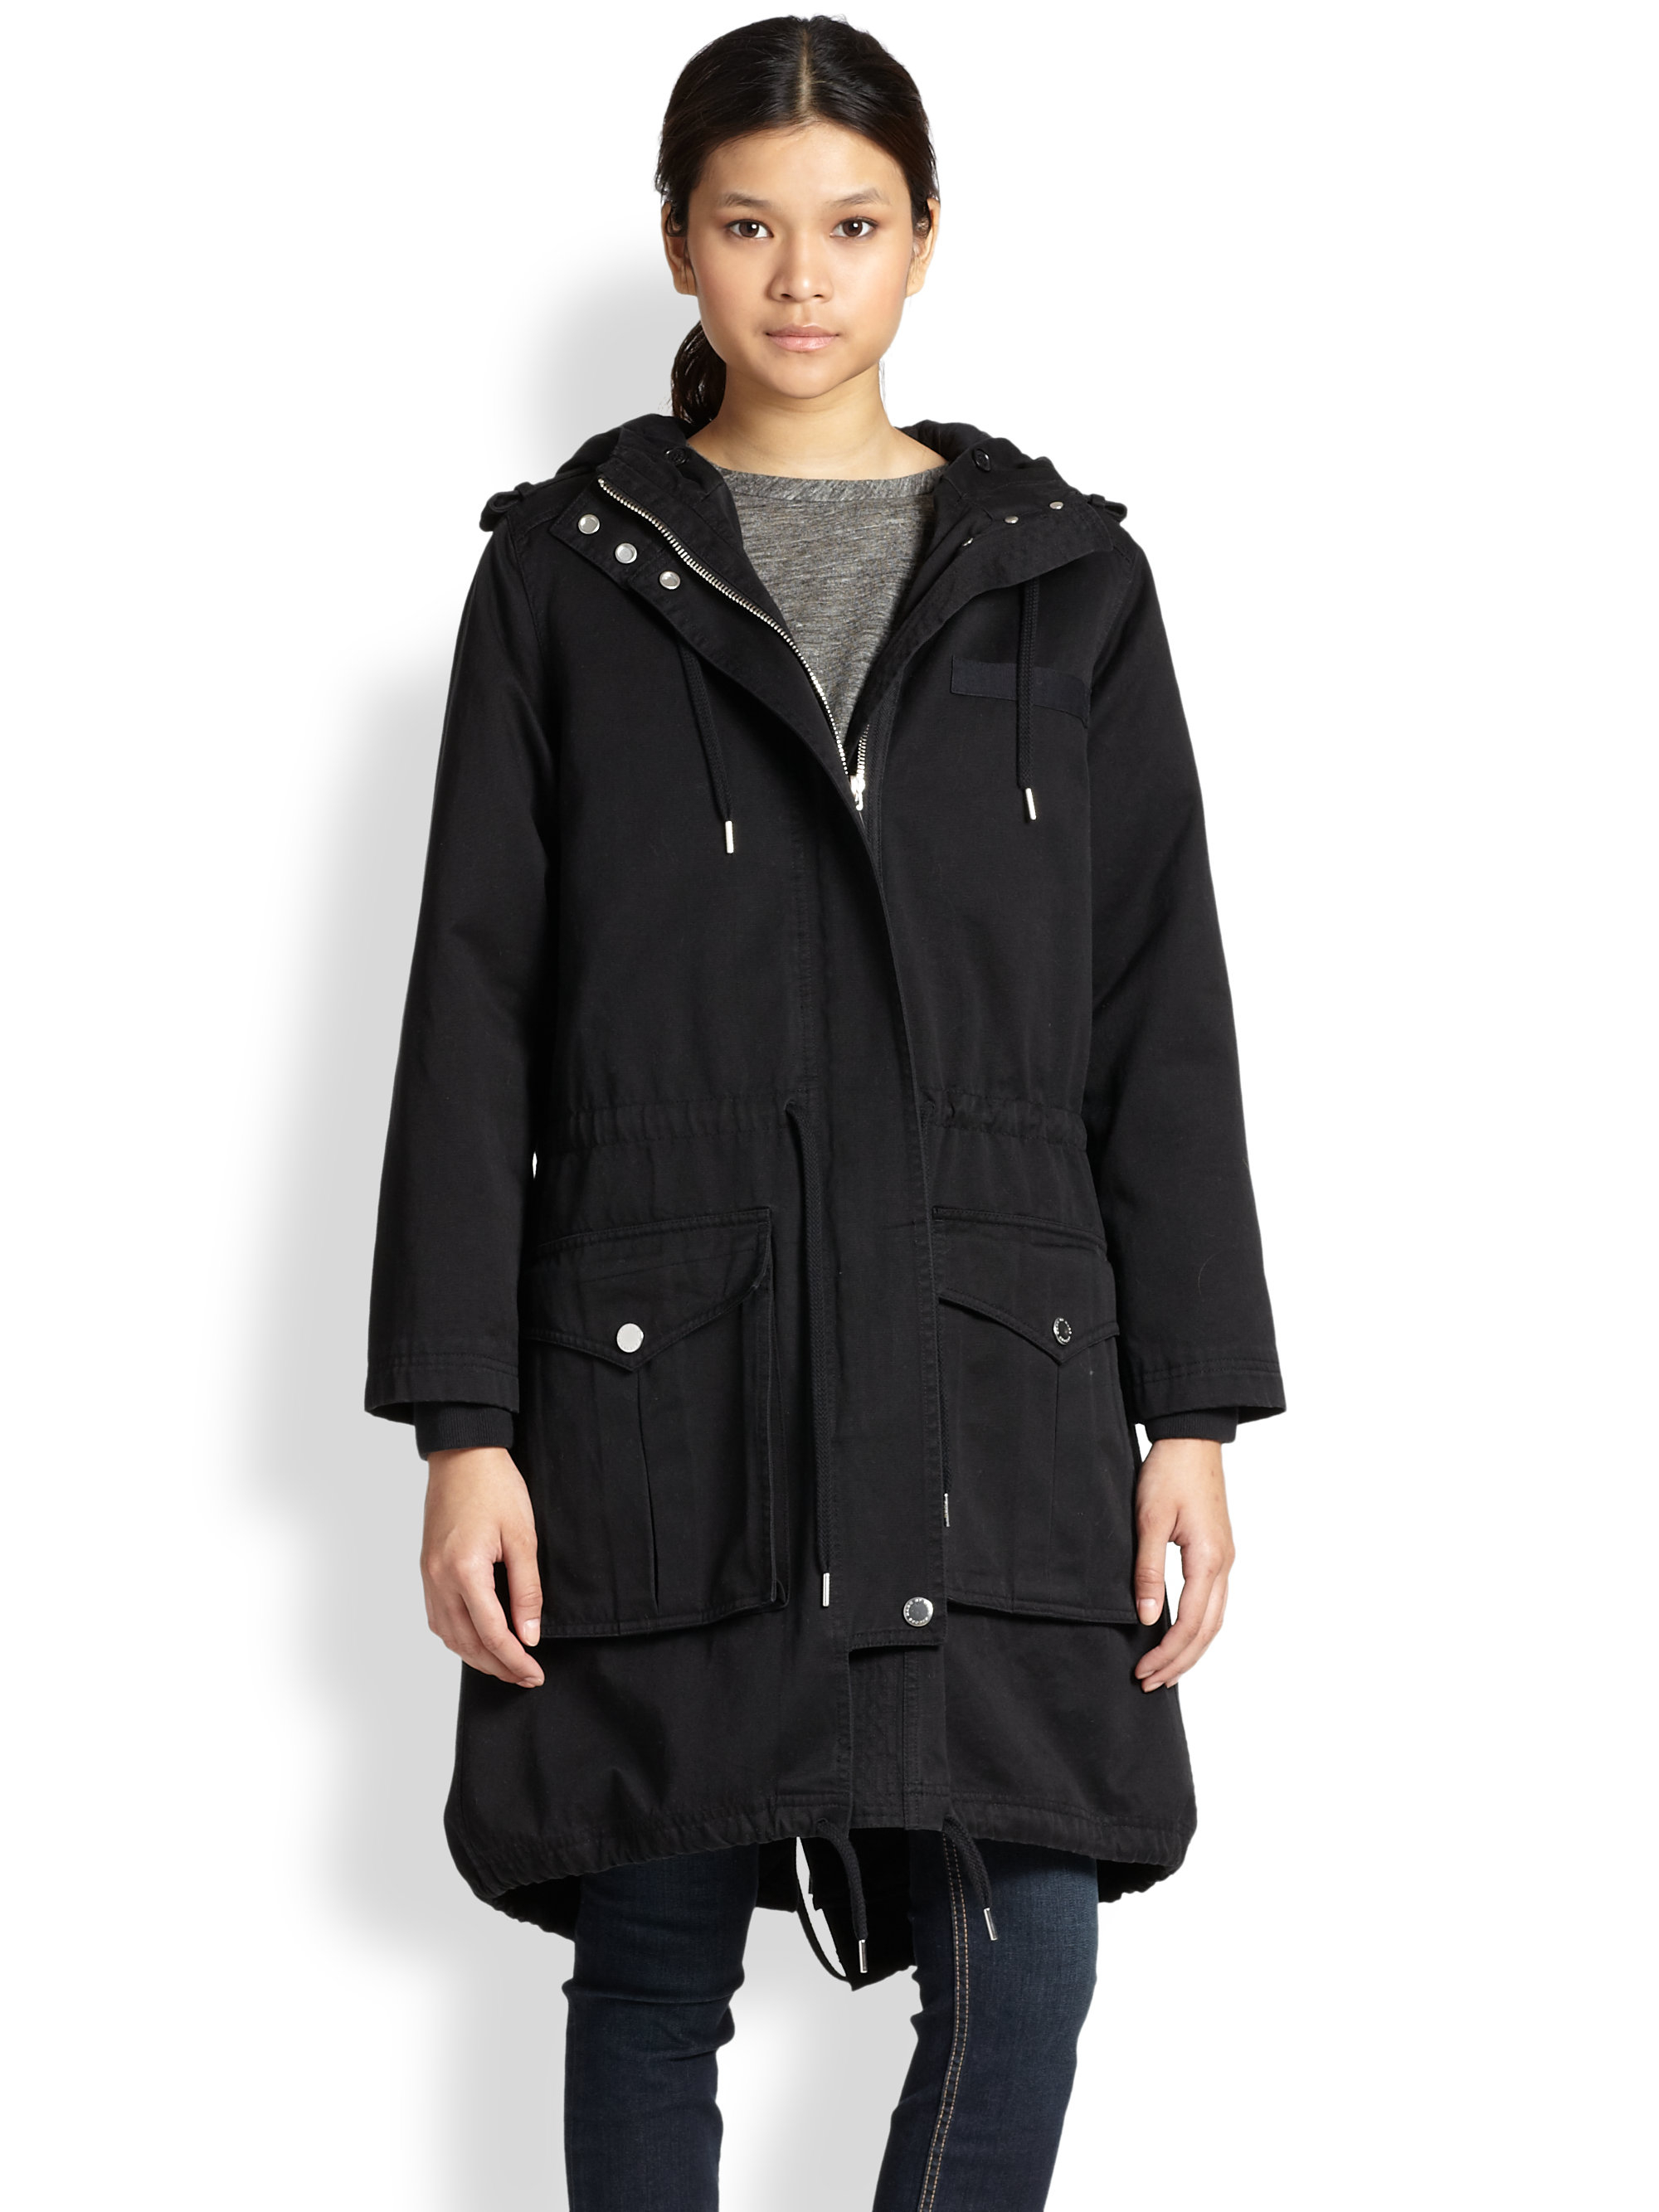 Marc by marc jacobs Cotton Army Parka in Black | Lyst